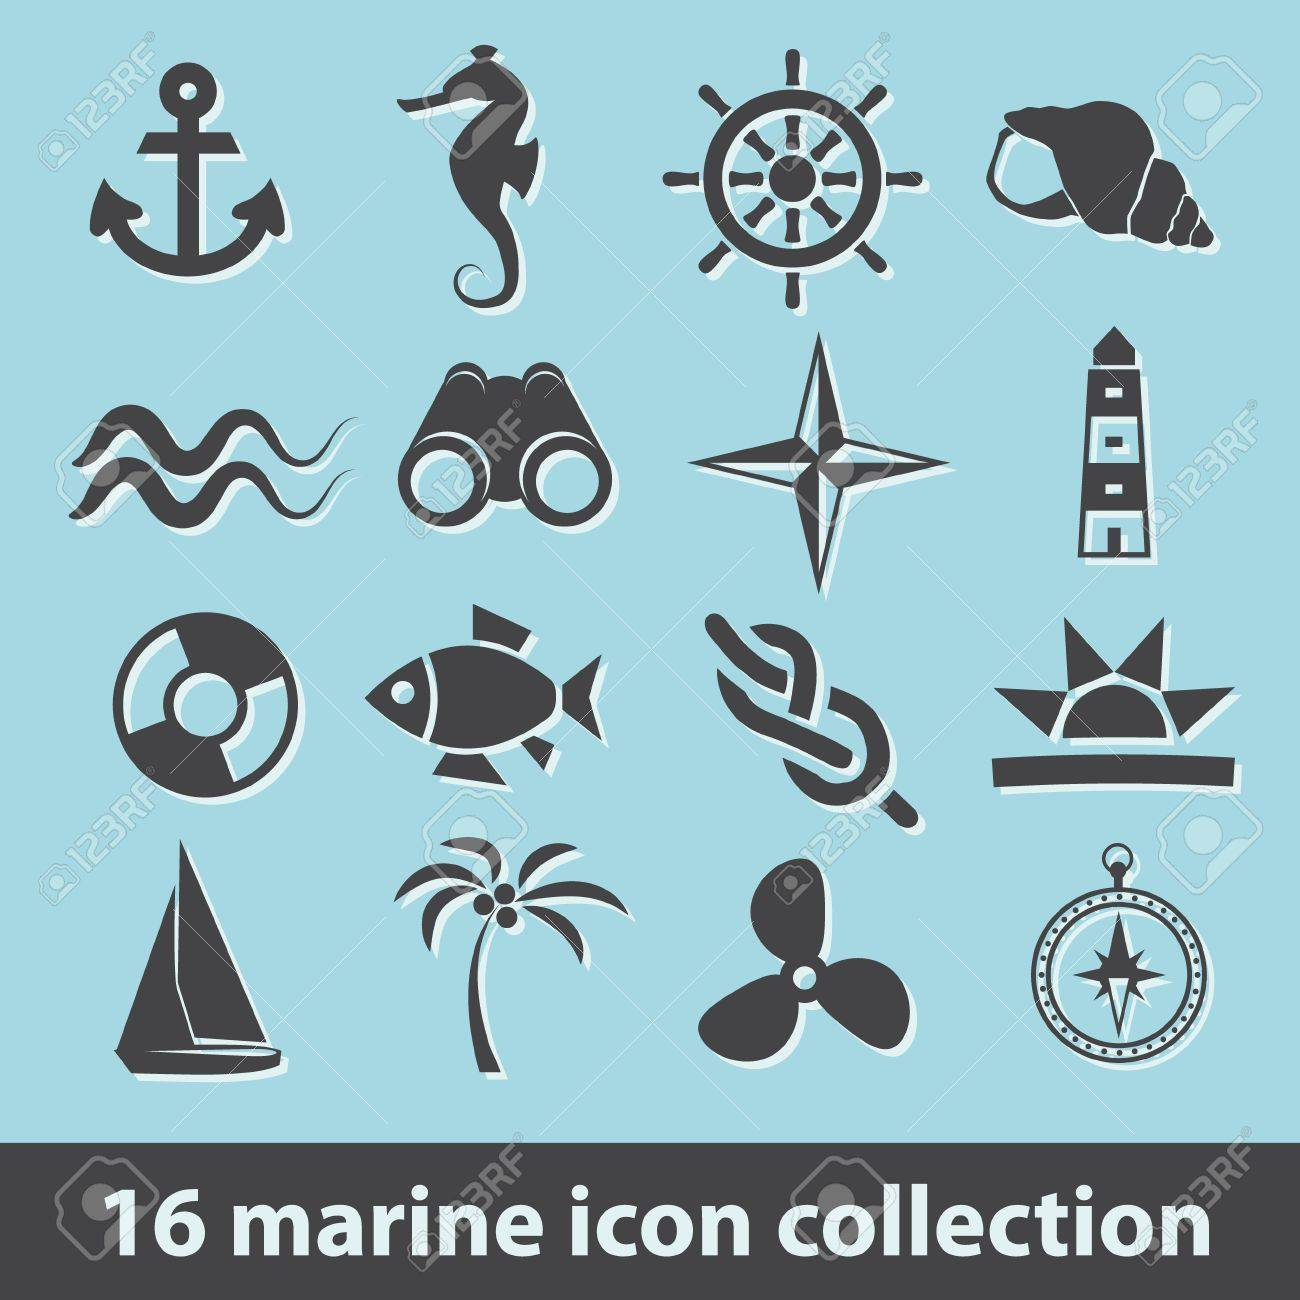 16 marine icon collection - 17761405